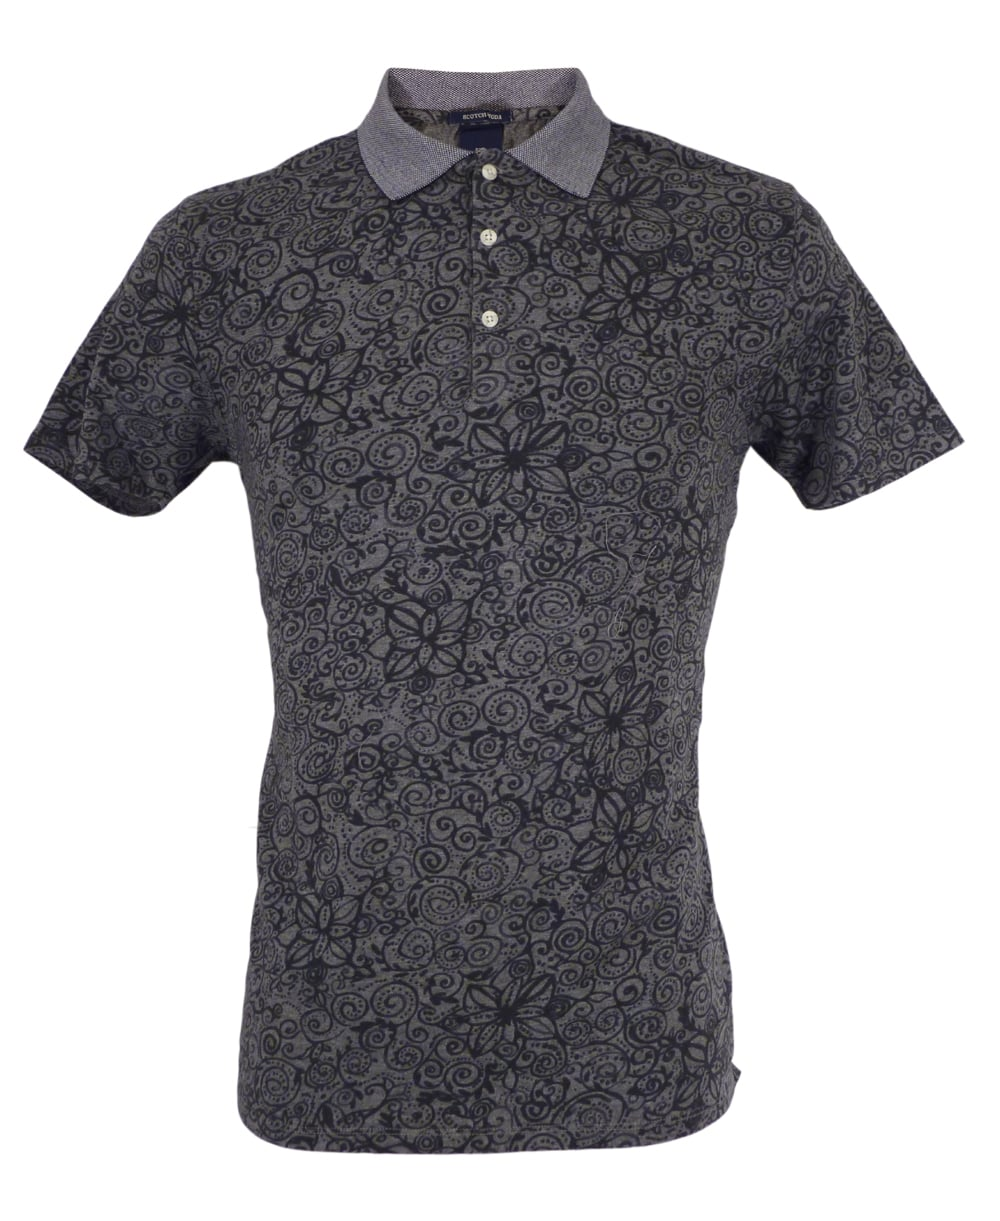 grey-floral-pattern-refined-polo-shirt-p58734-74048_zoom